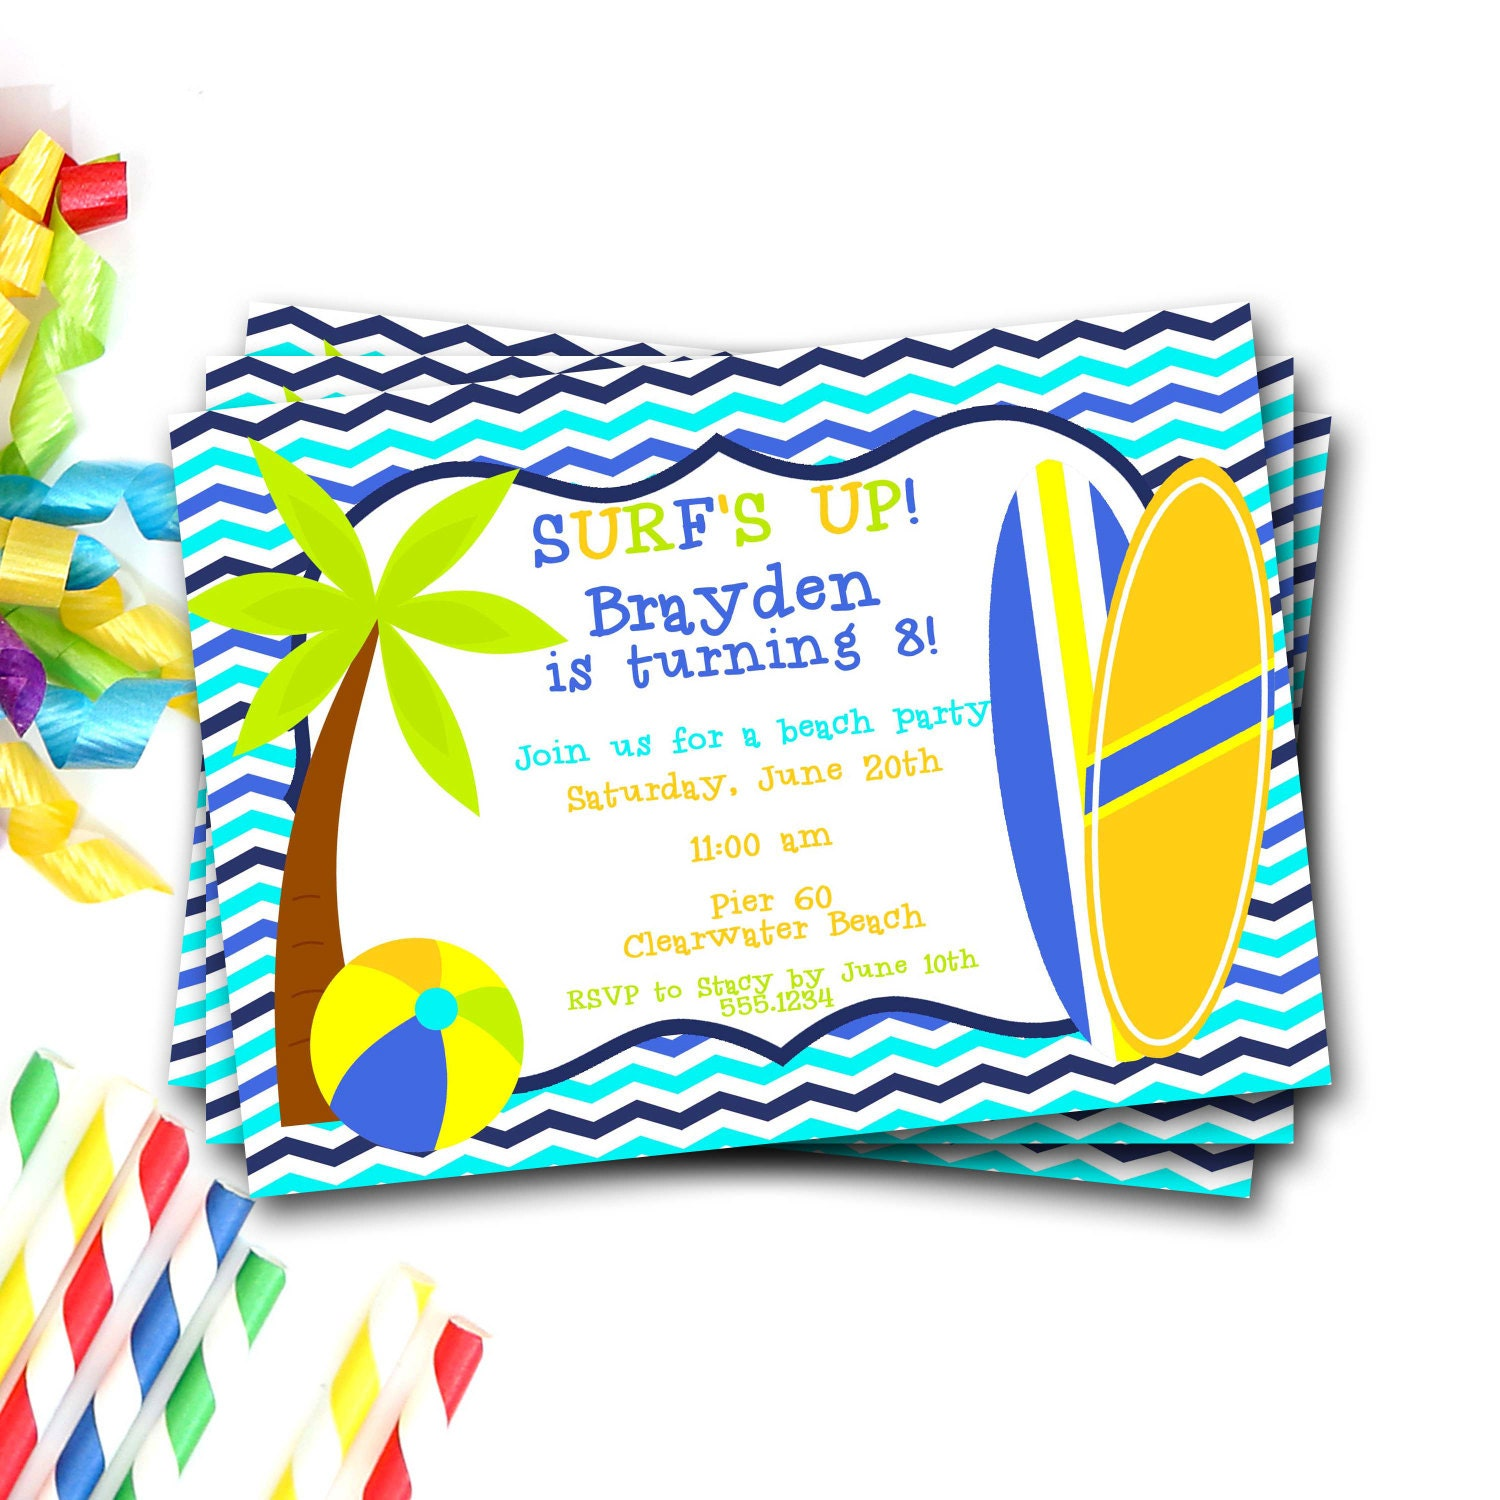 beach party invitation beach invite beach birthday party pool